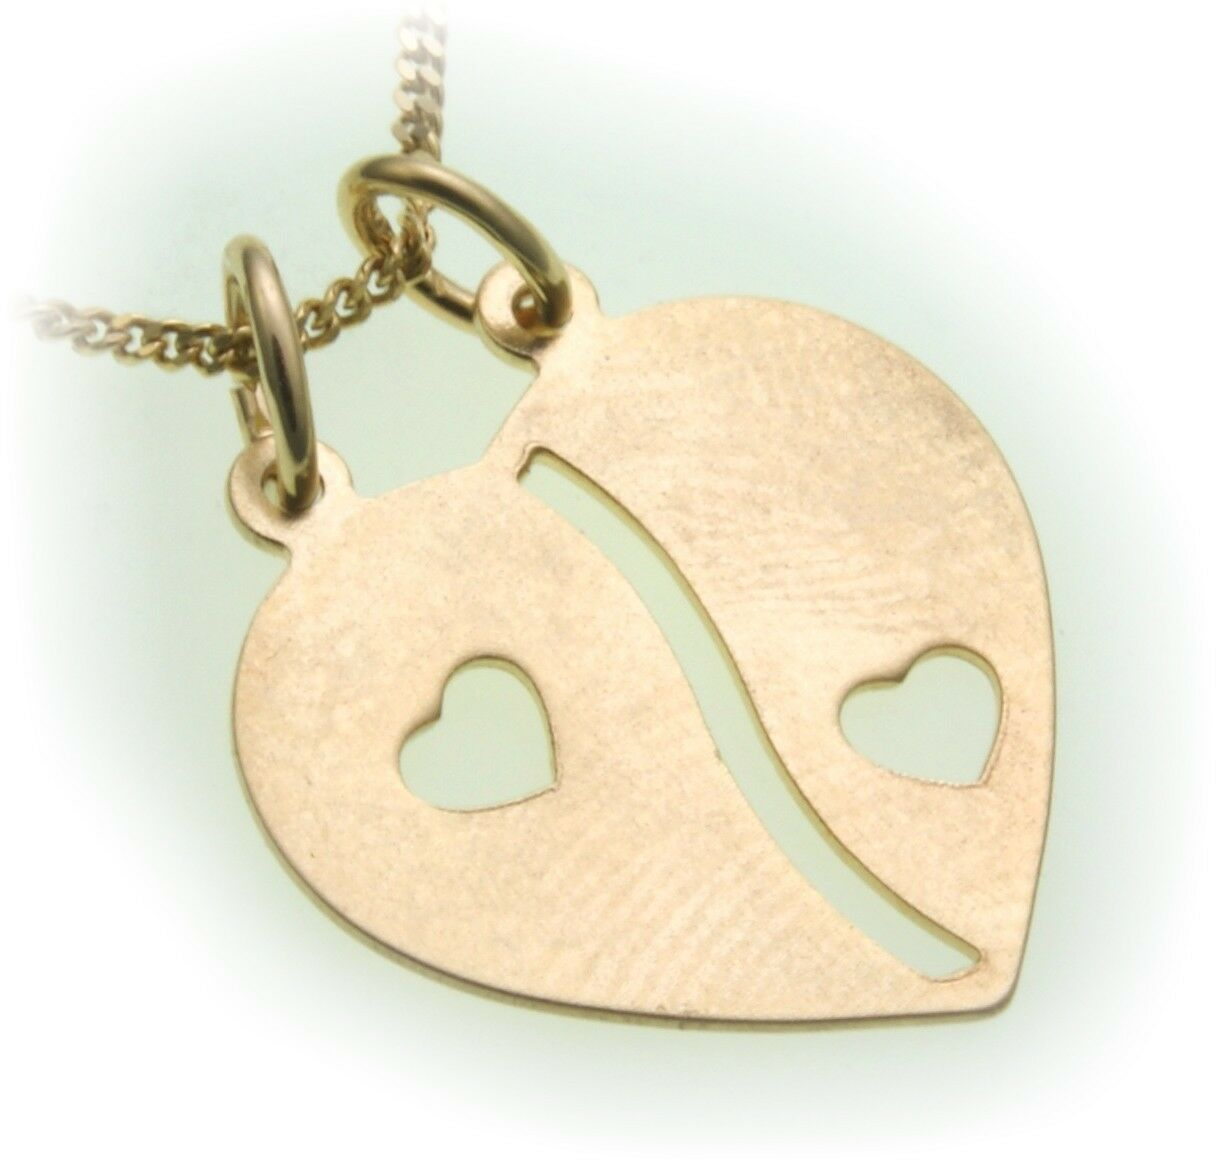 Partner Heart Pendant real gold 333 incl. Engraving Quality Yellow gold Unisex